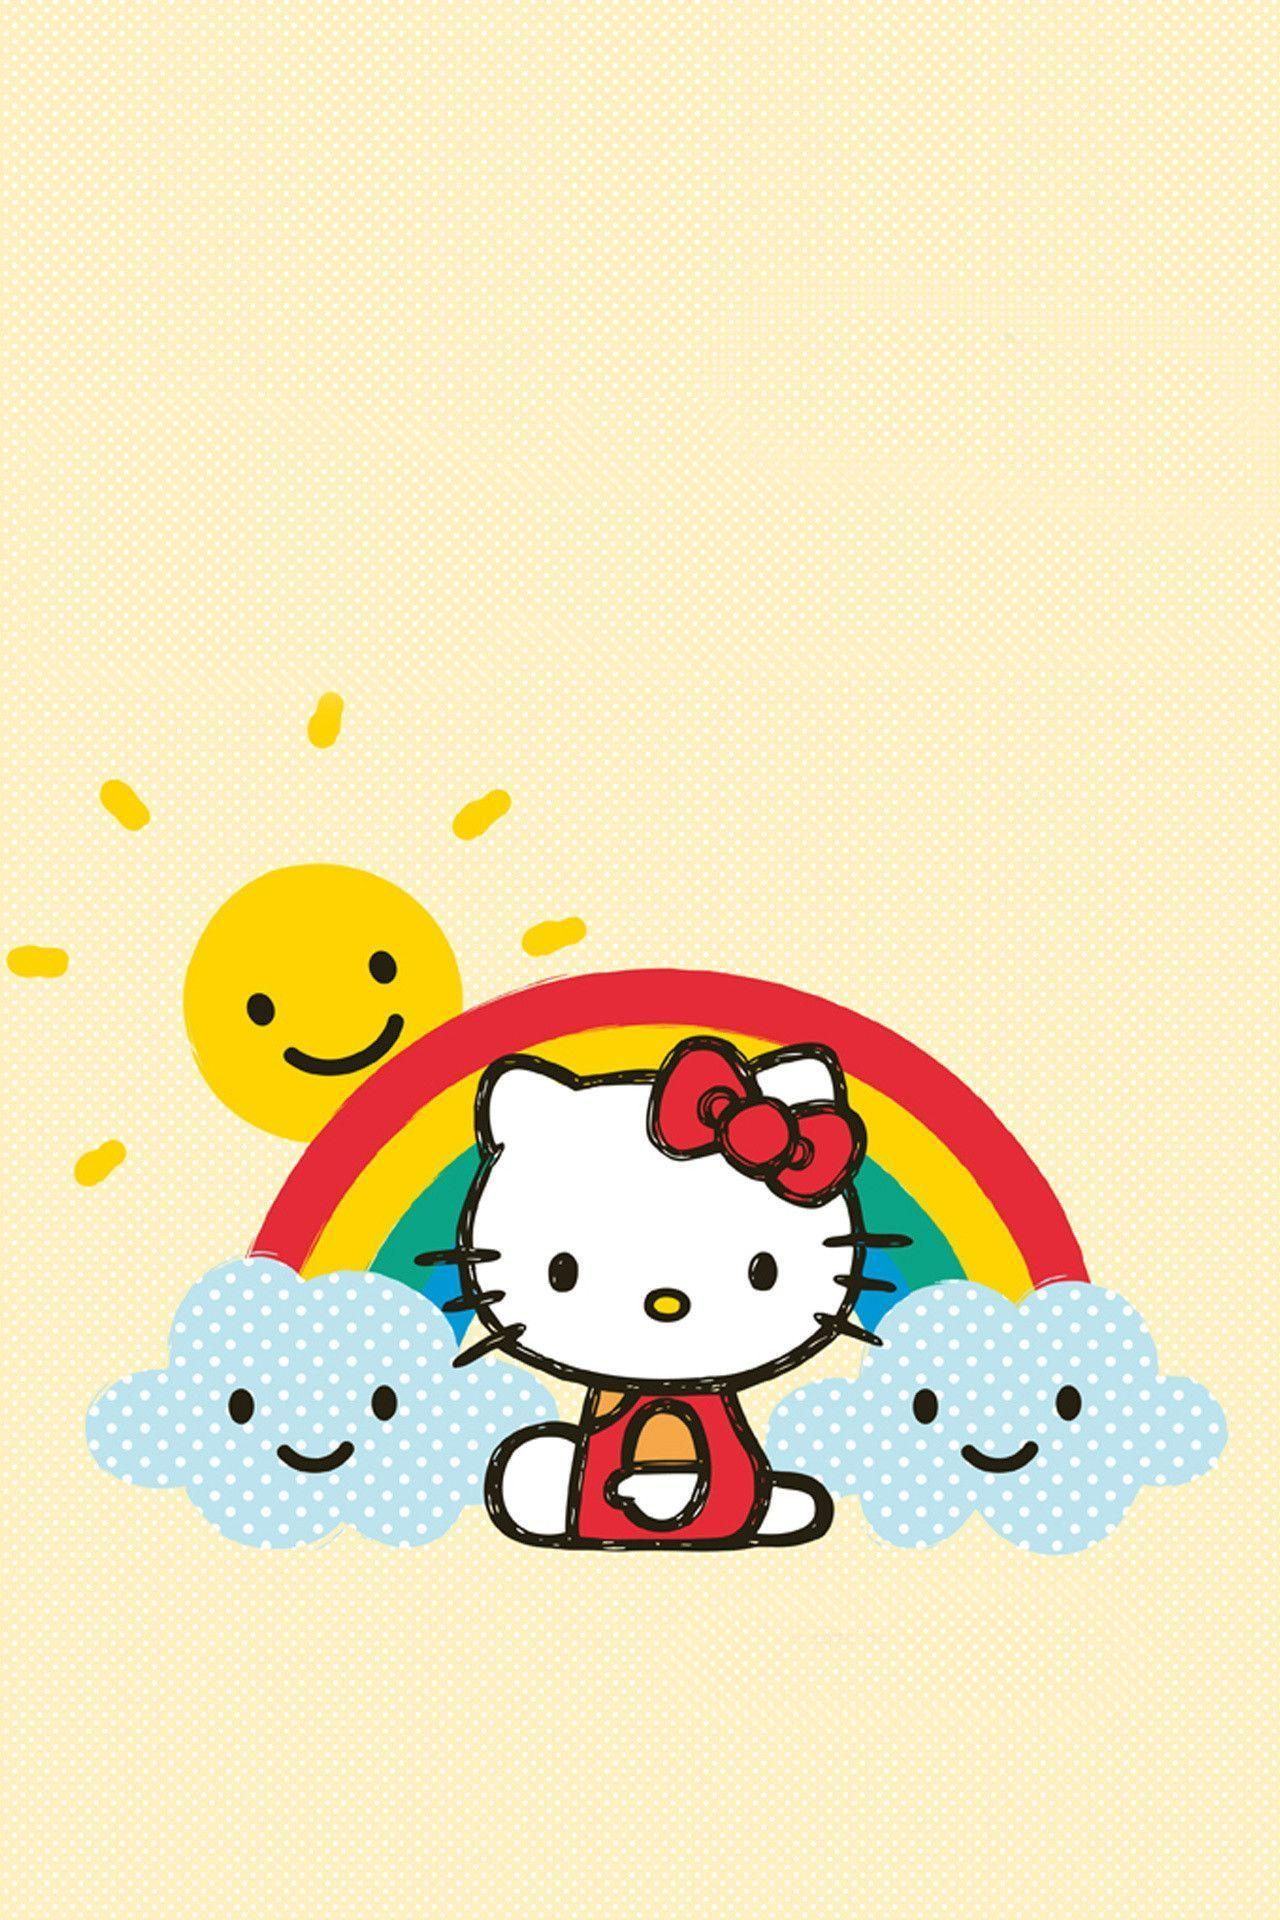 Sanrio Wallpapers - Wallpaper Cave